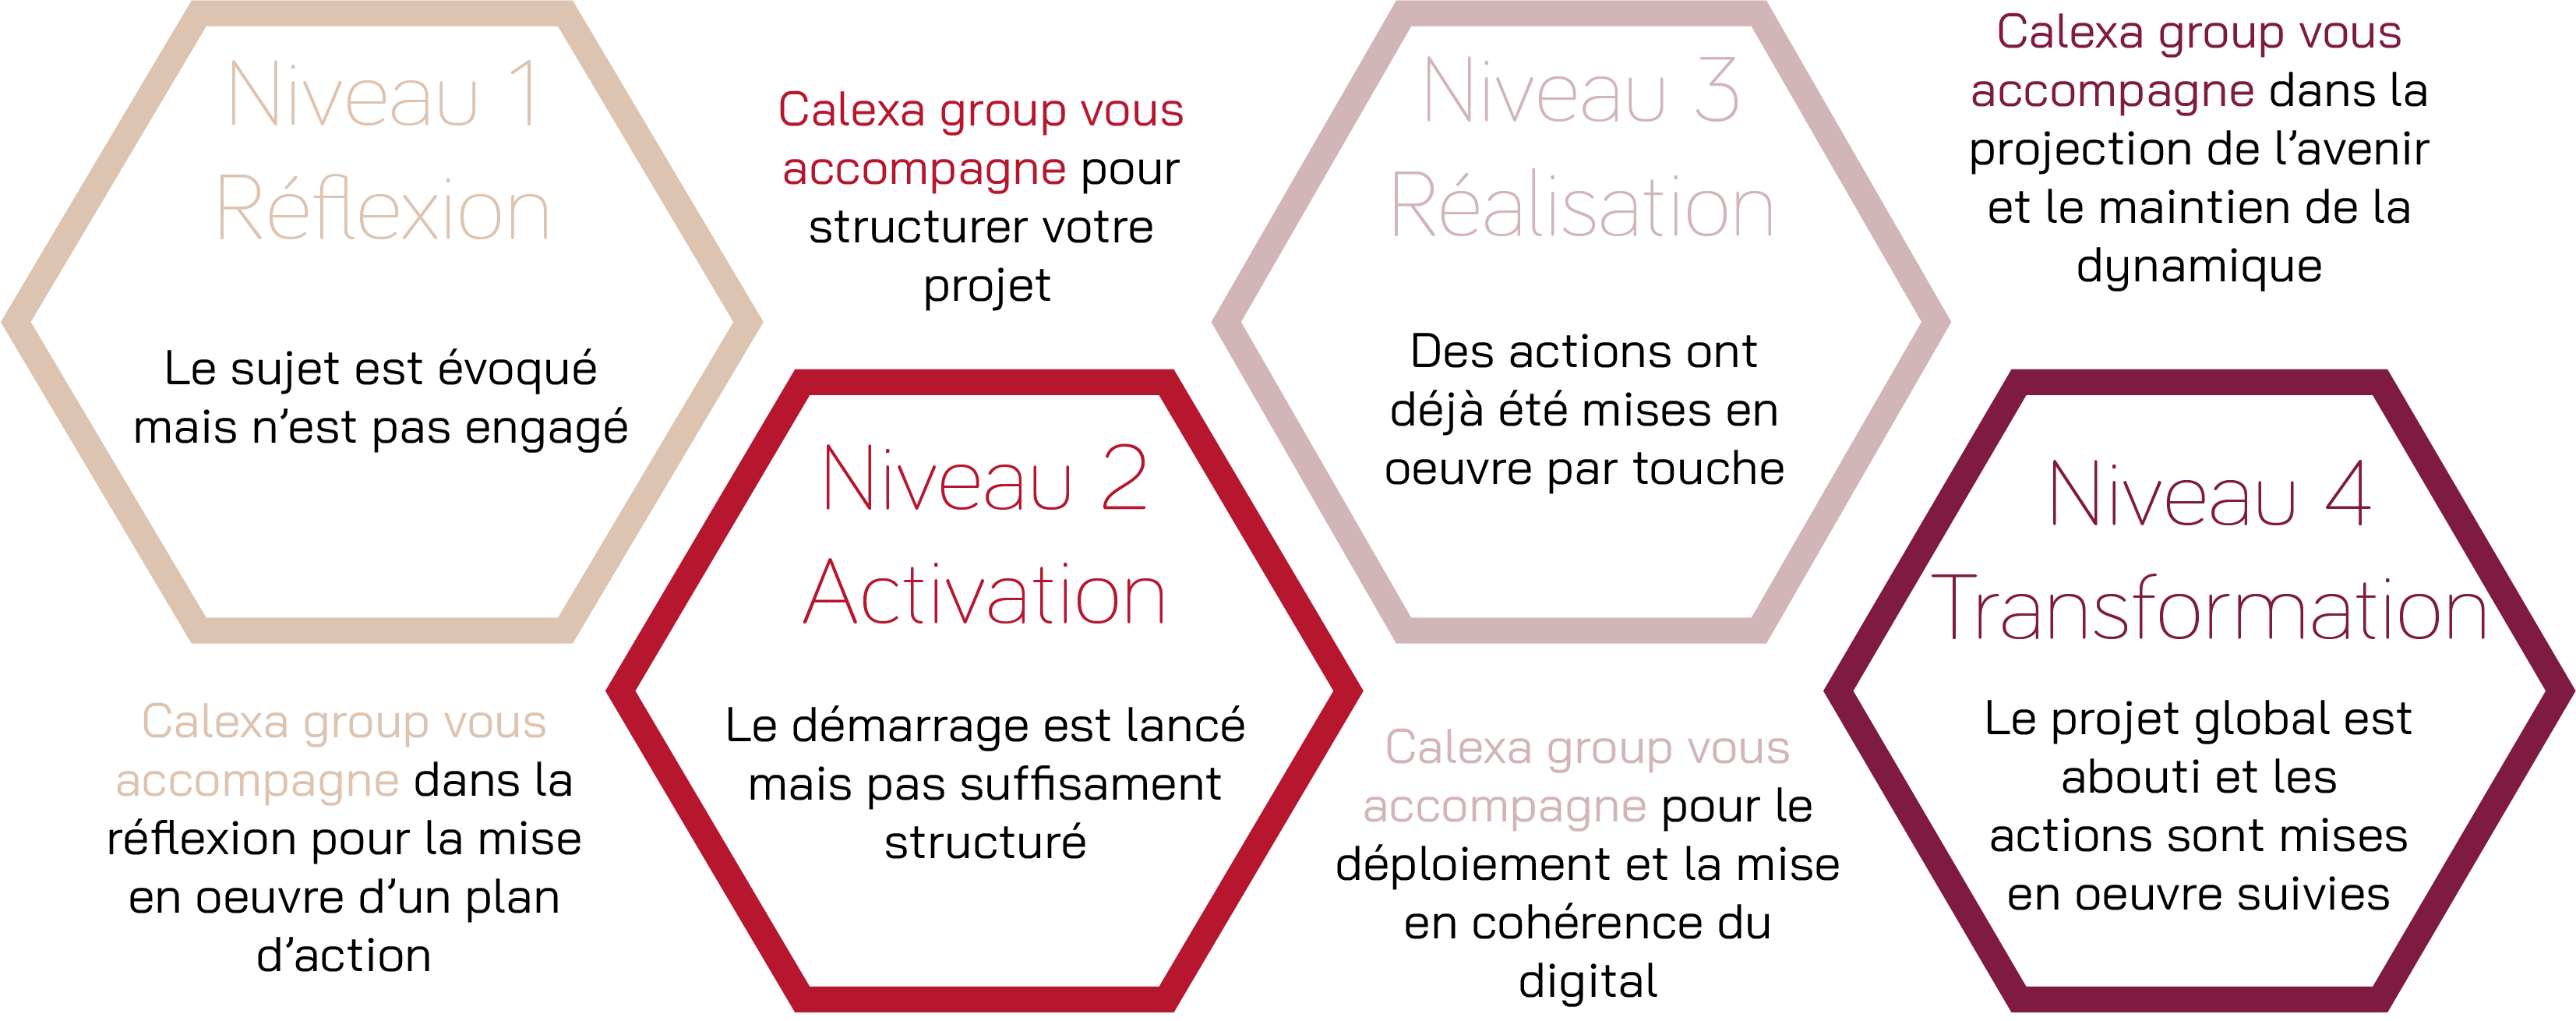 schema-accomapgnement-transformation-digitale-sirh-rh